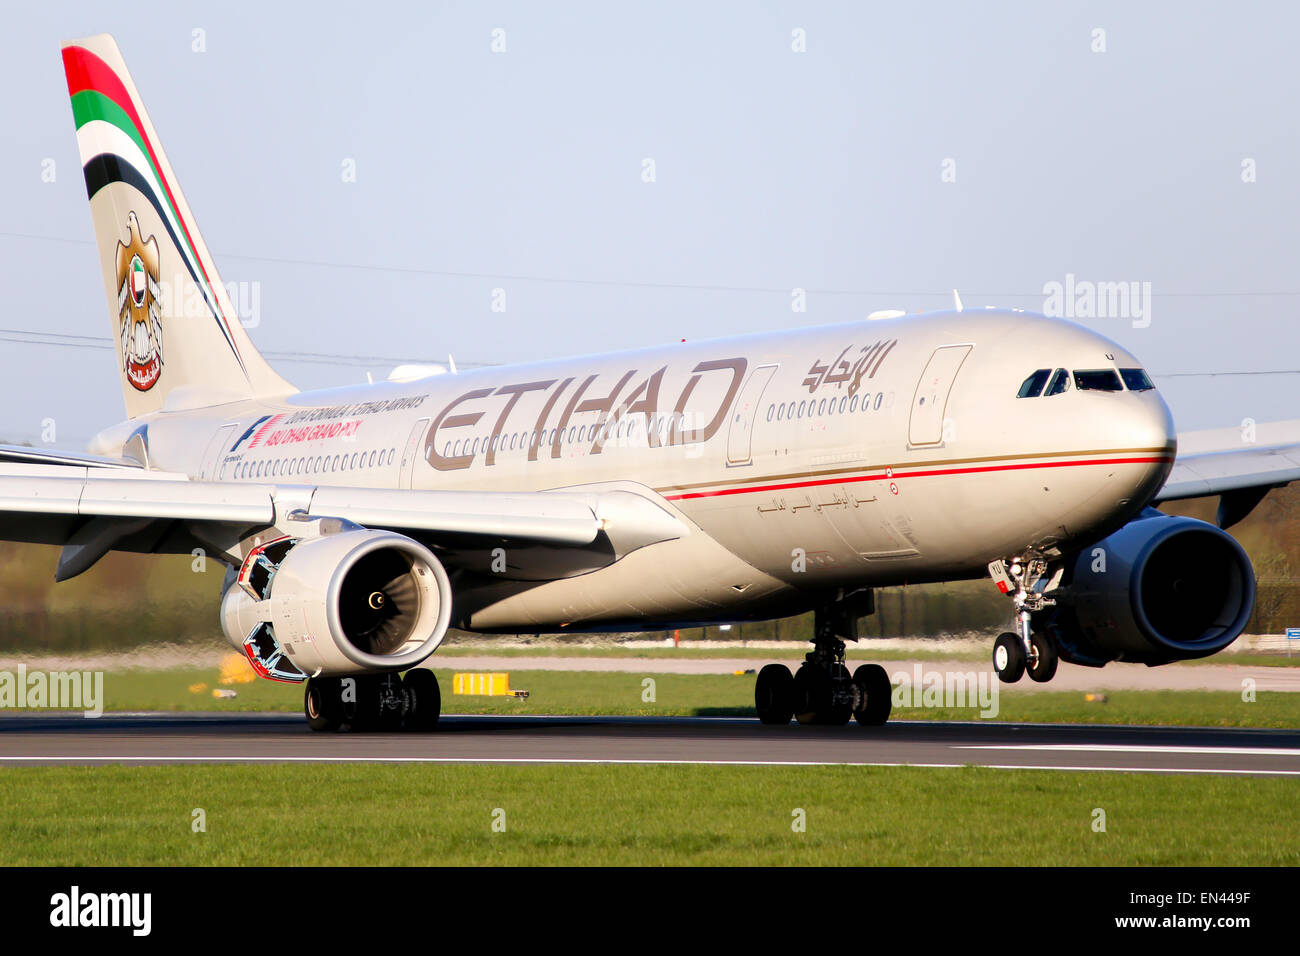 Etihad Airways Airbus A330-200 touches down on runway 05R at Manchester airport. - Stock Image